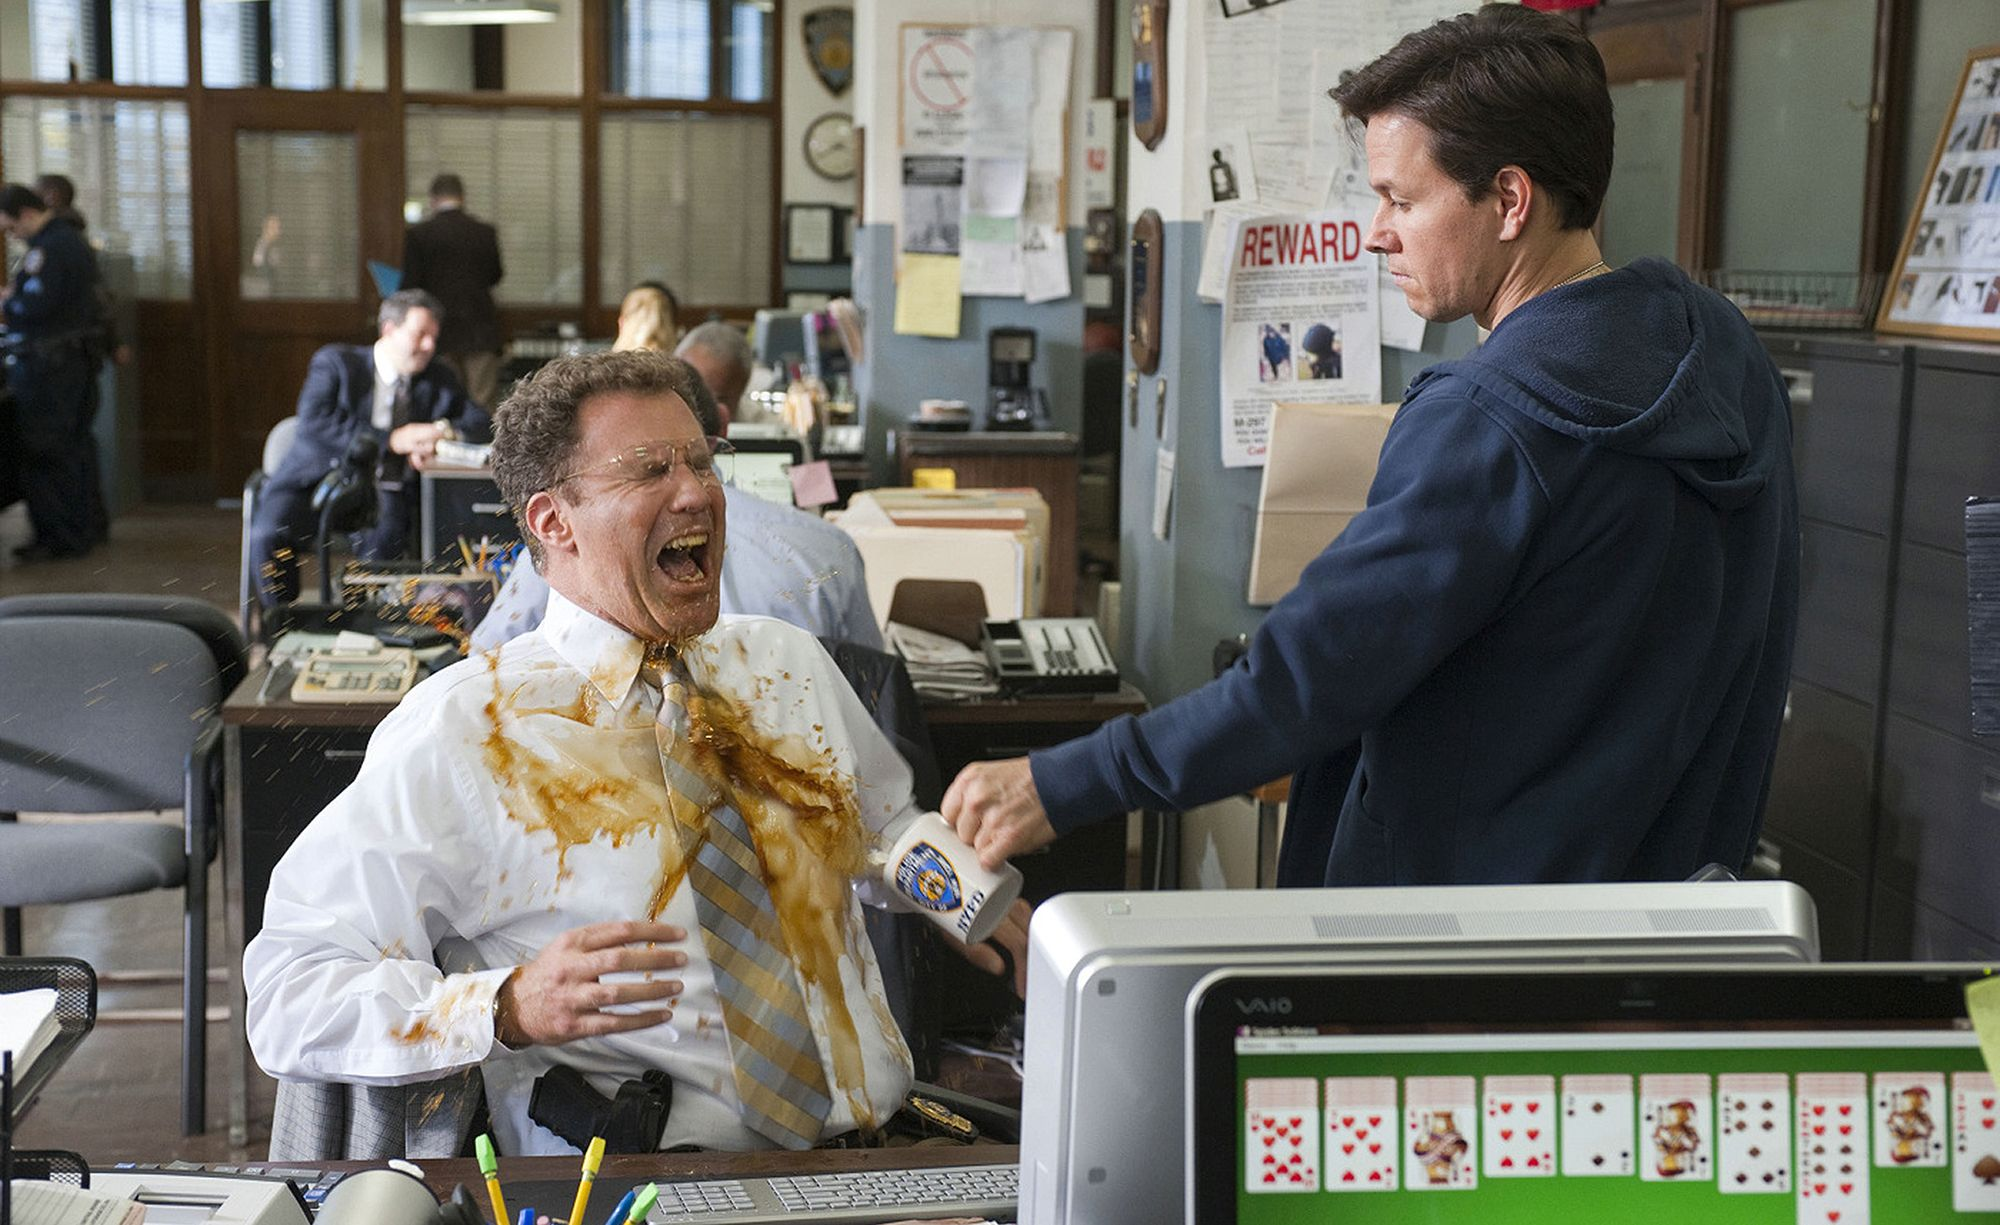 The 10 things making you sick in your office